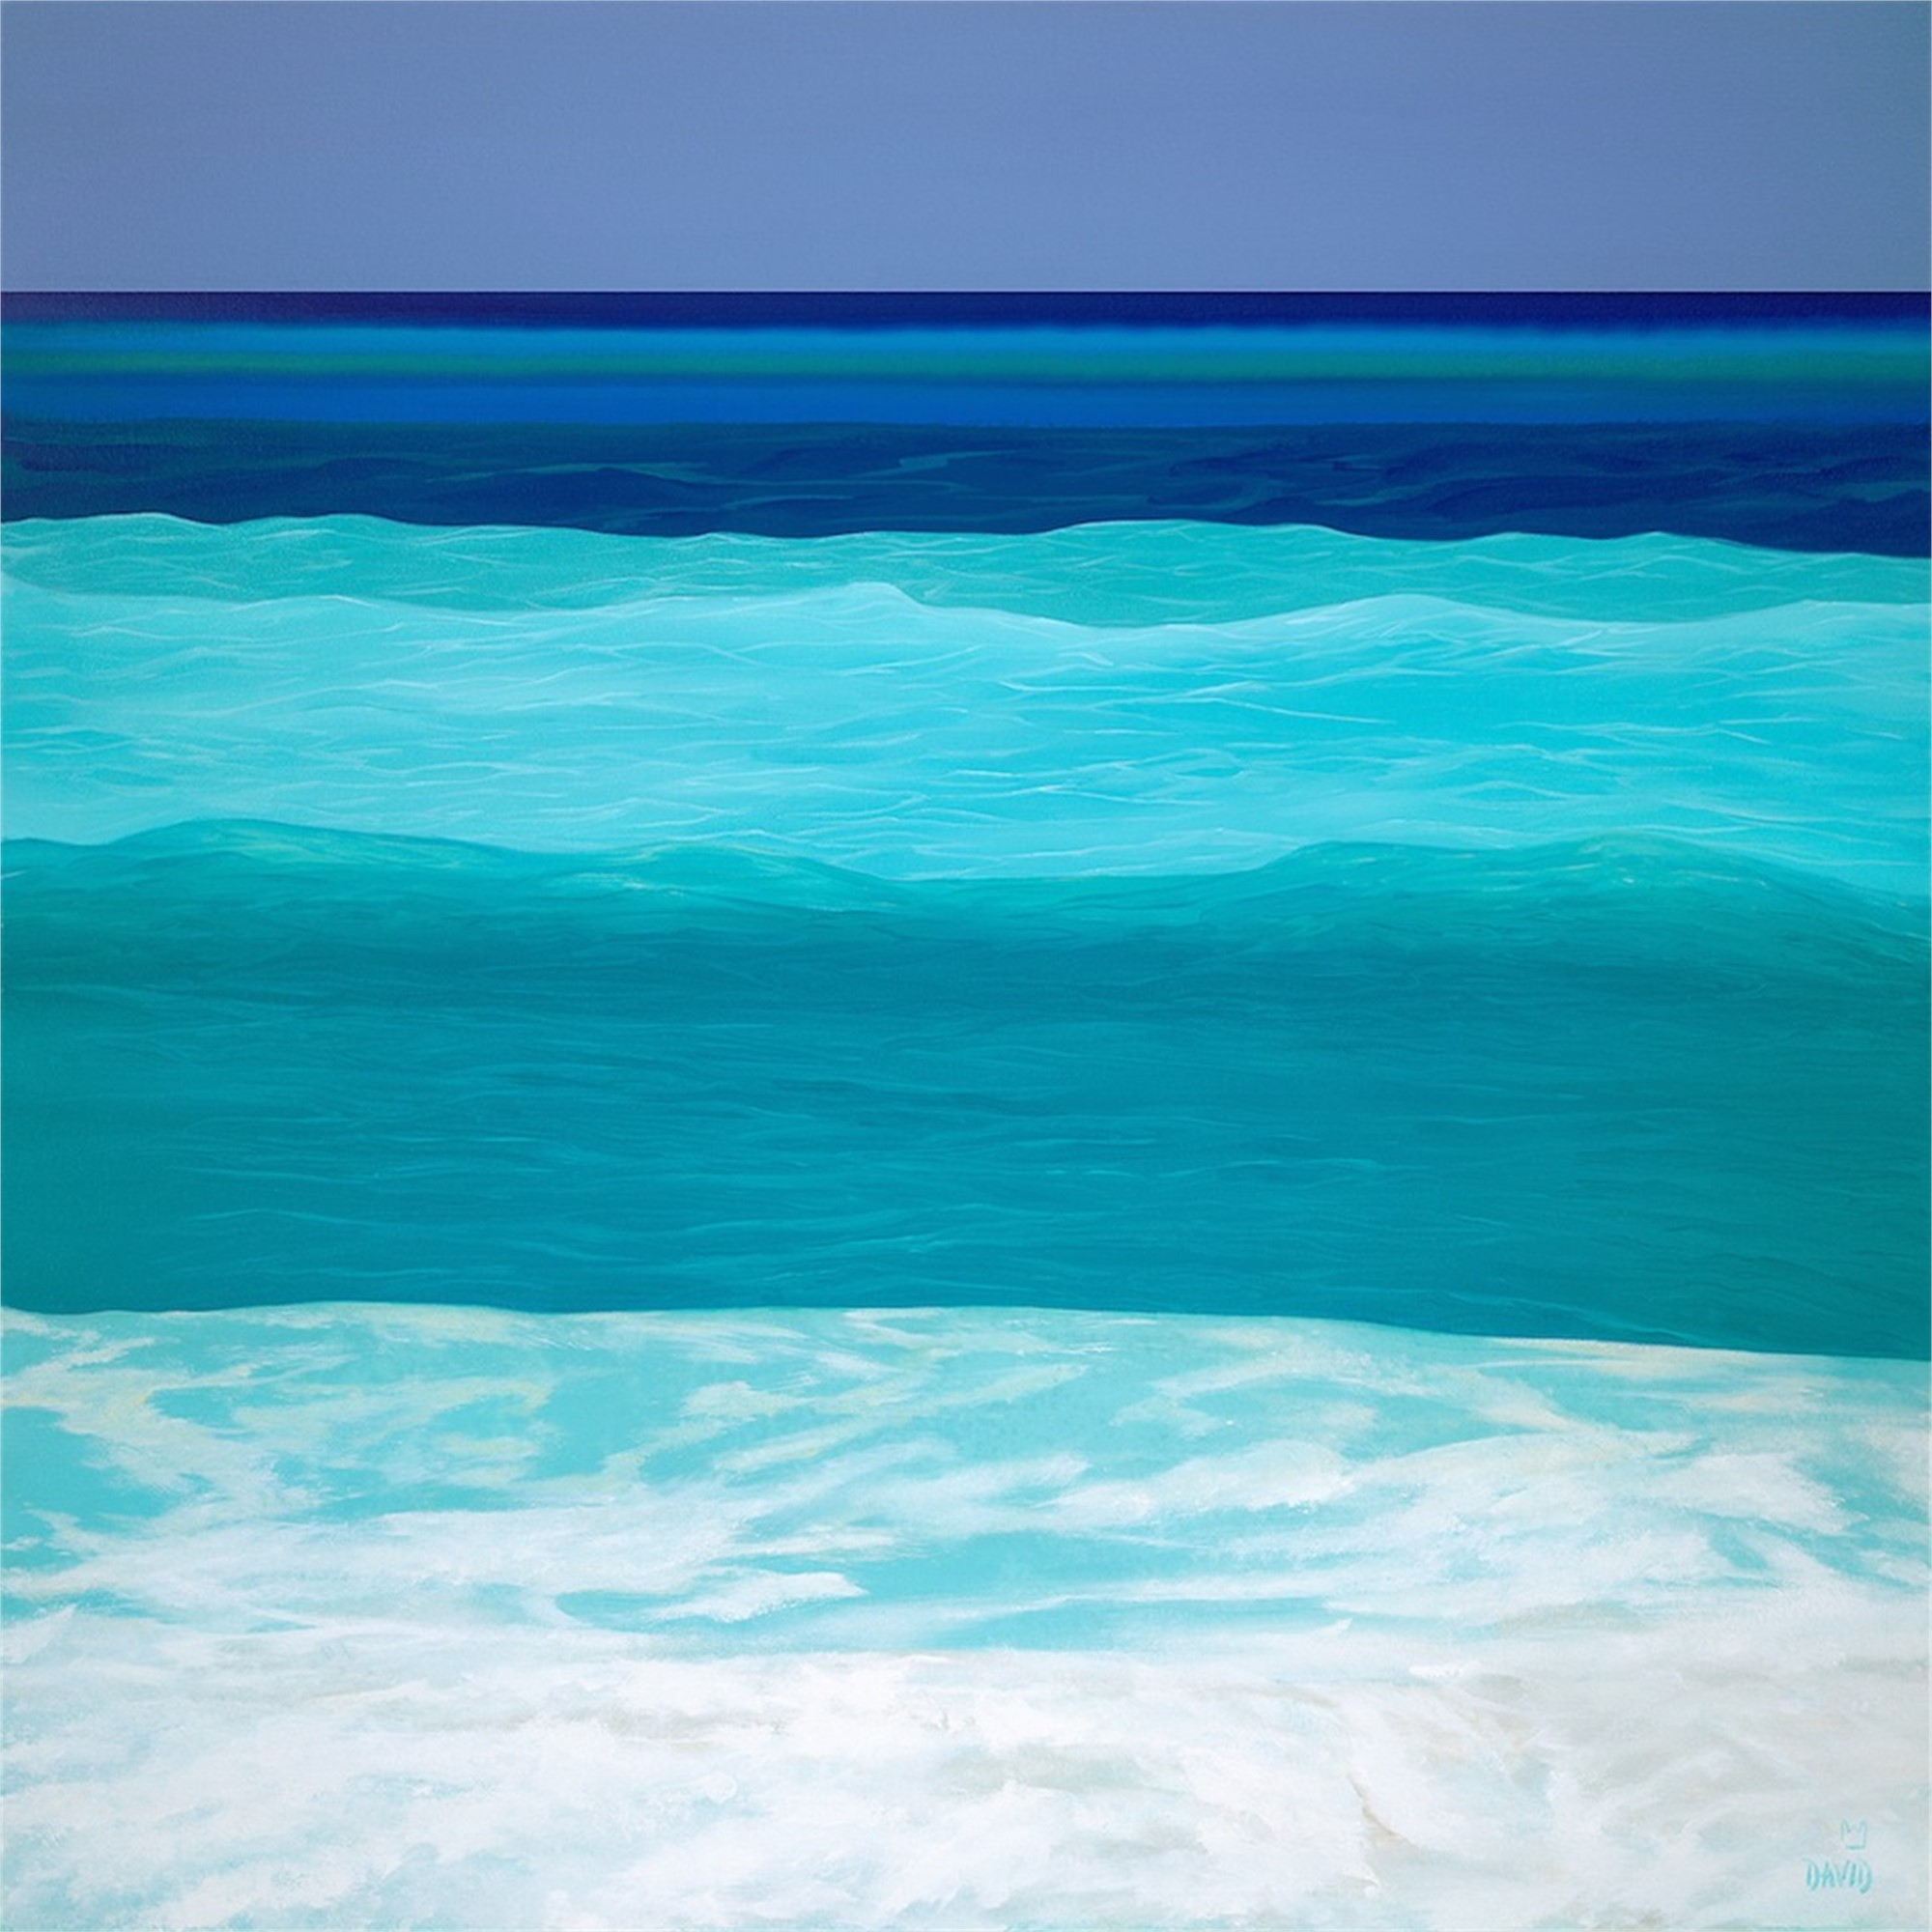 Blue Seas by David Jonathan Marshall